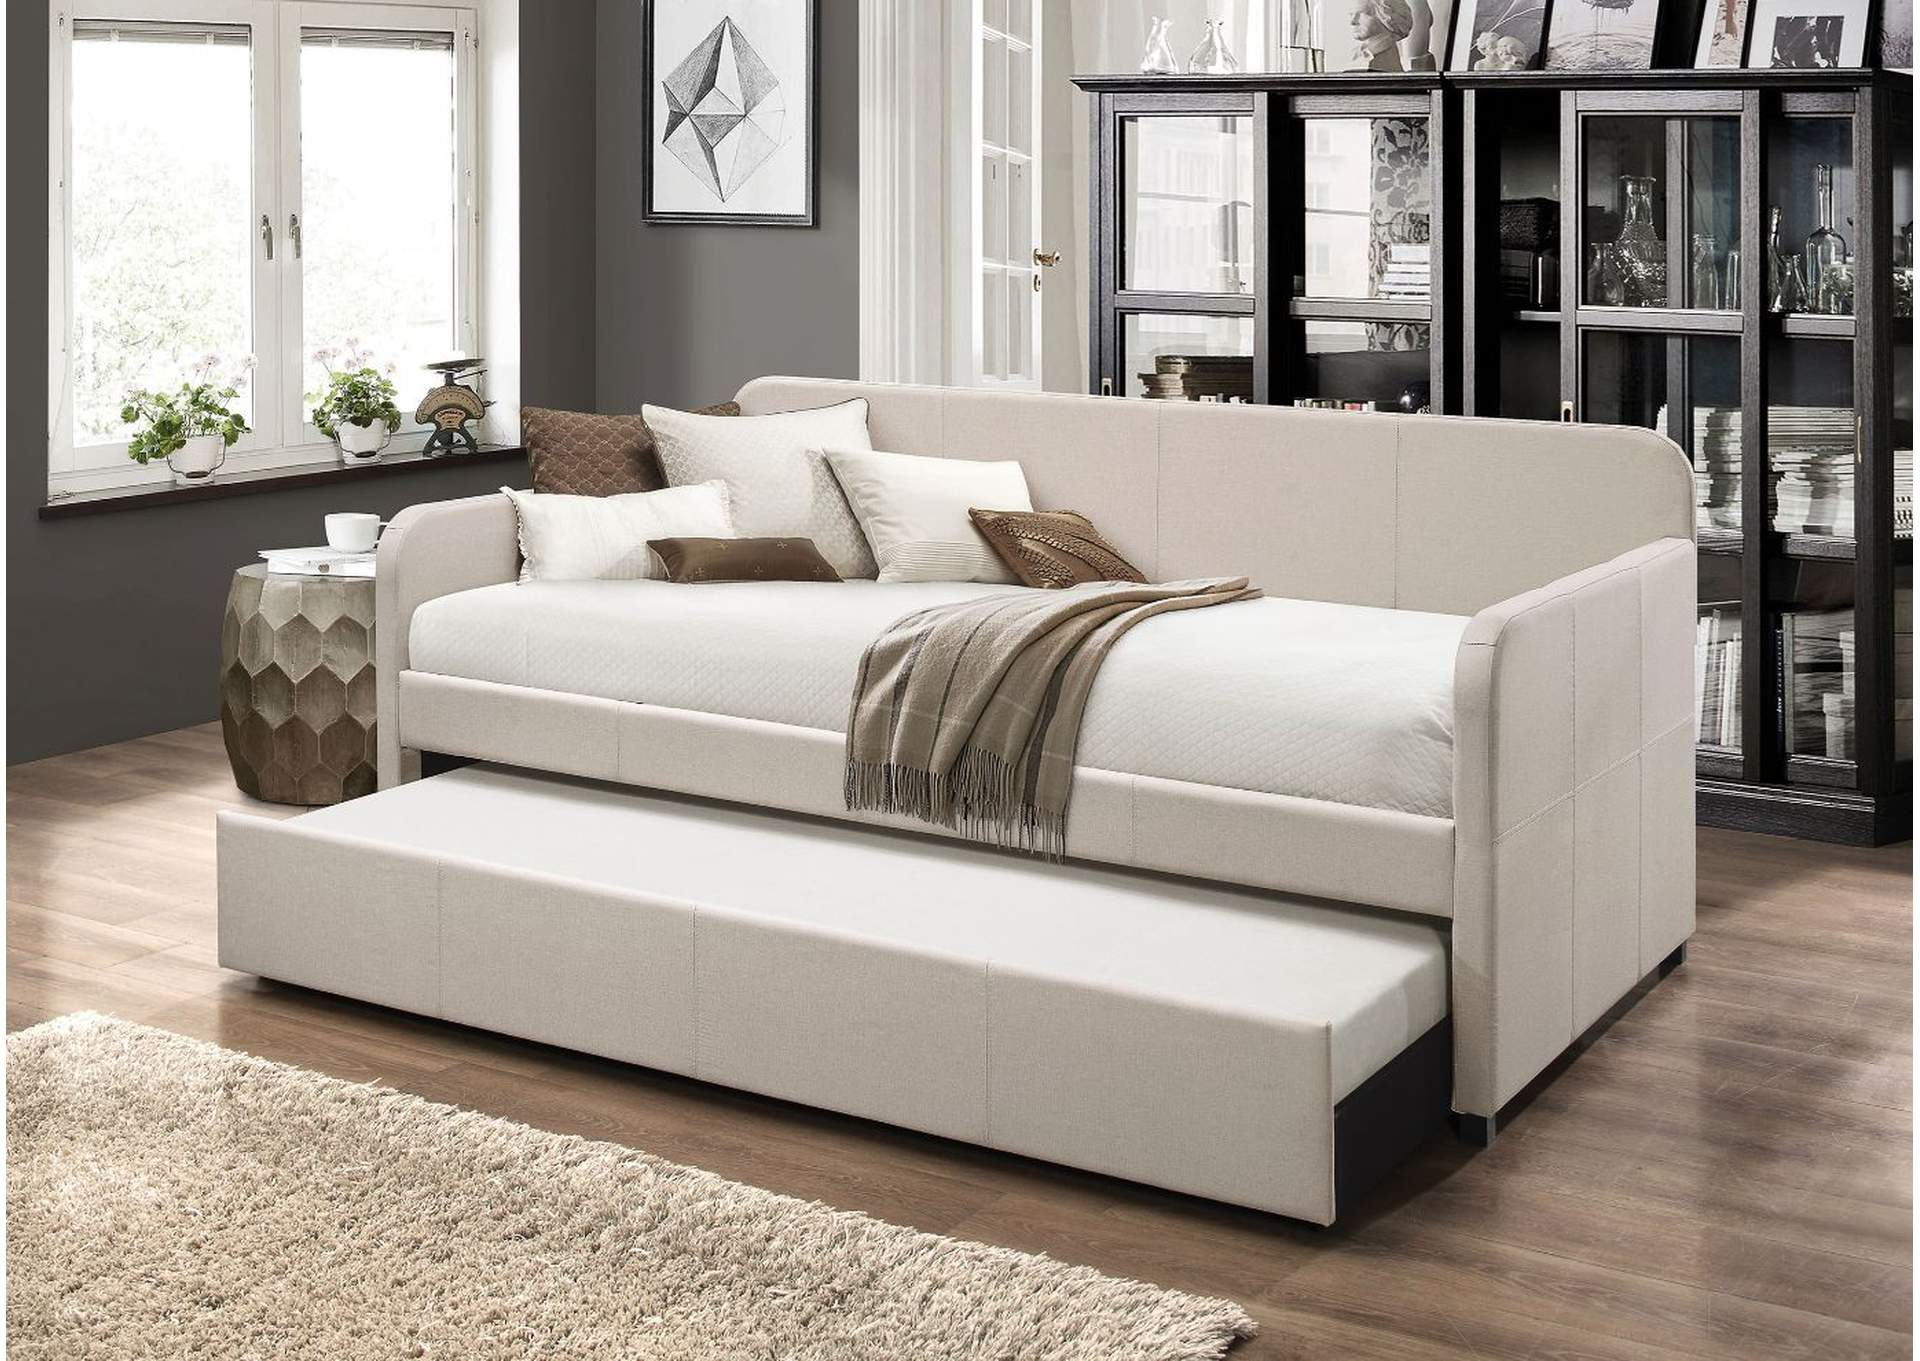 Jagger Fog Fabric Daybed,Acme